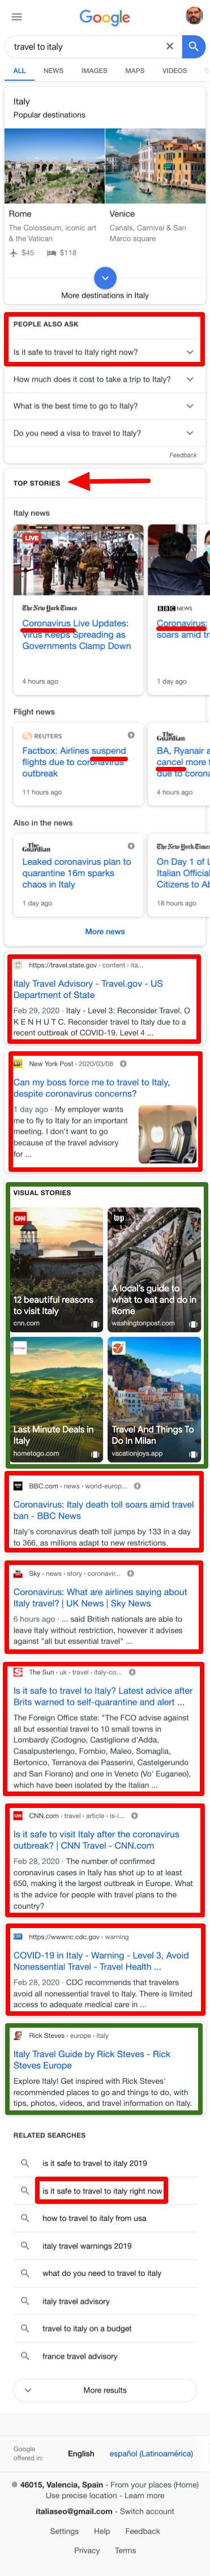 Travel to Italy Google.com SERP march 9th 2020